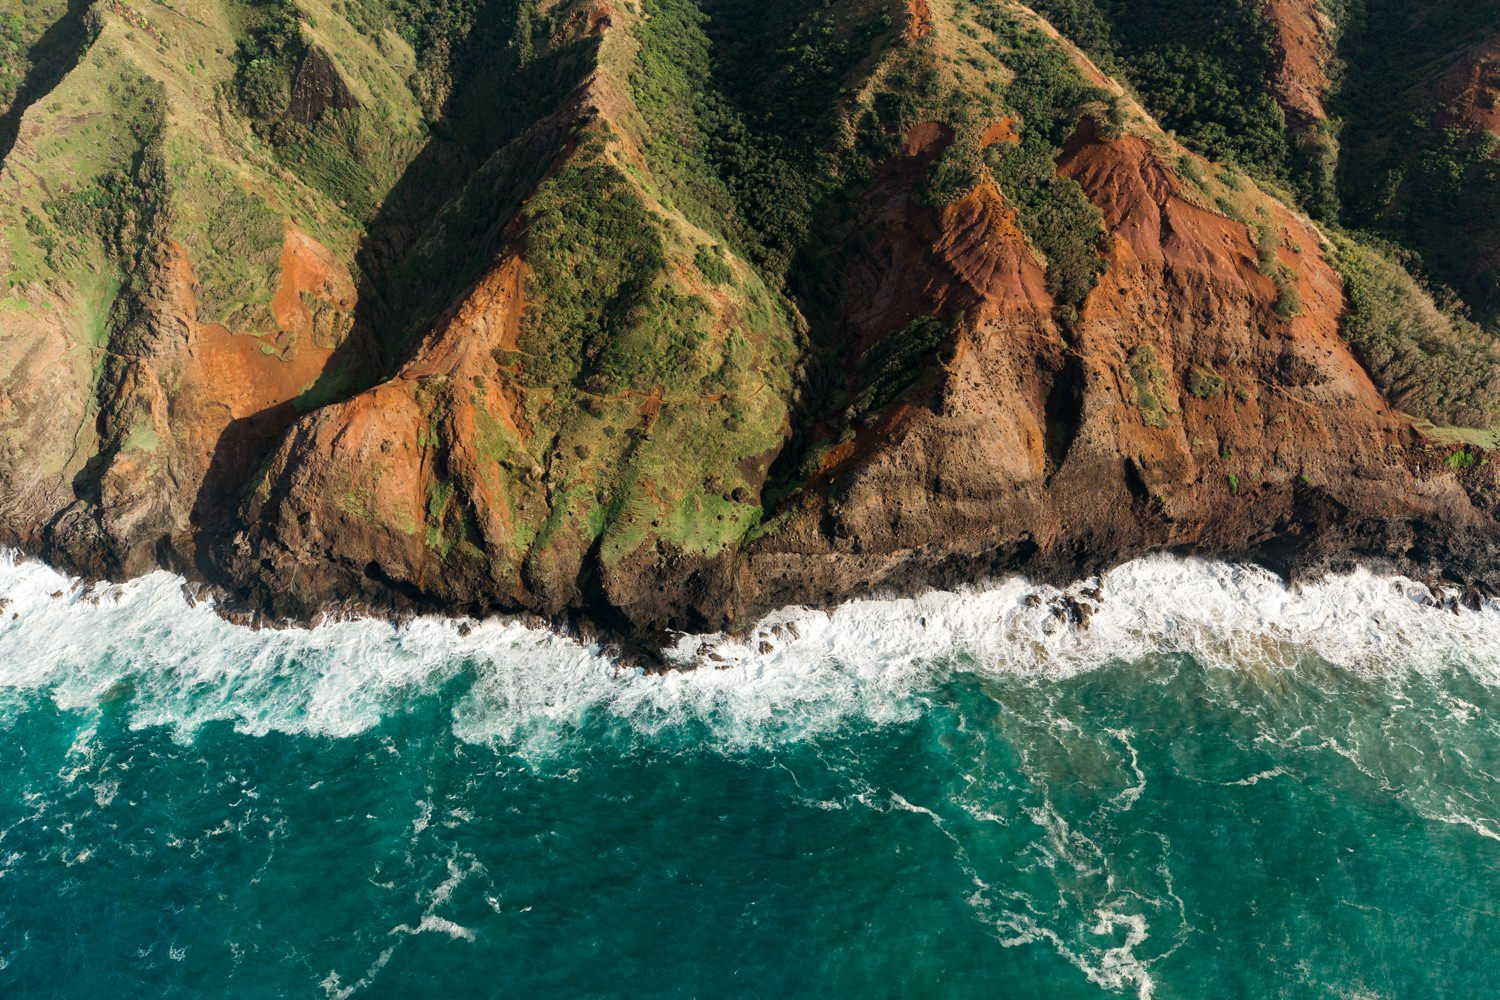 cameron-zegers-travel-photographer-seattle-kauai-helicopter.jpg